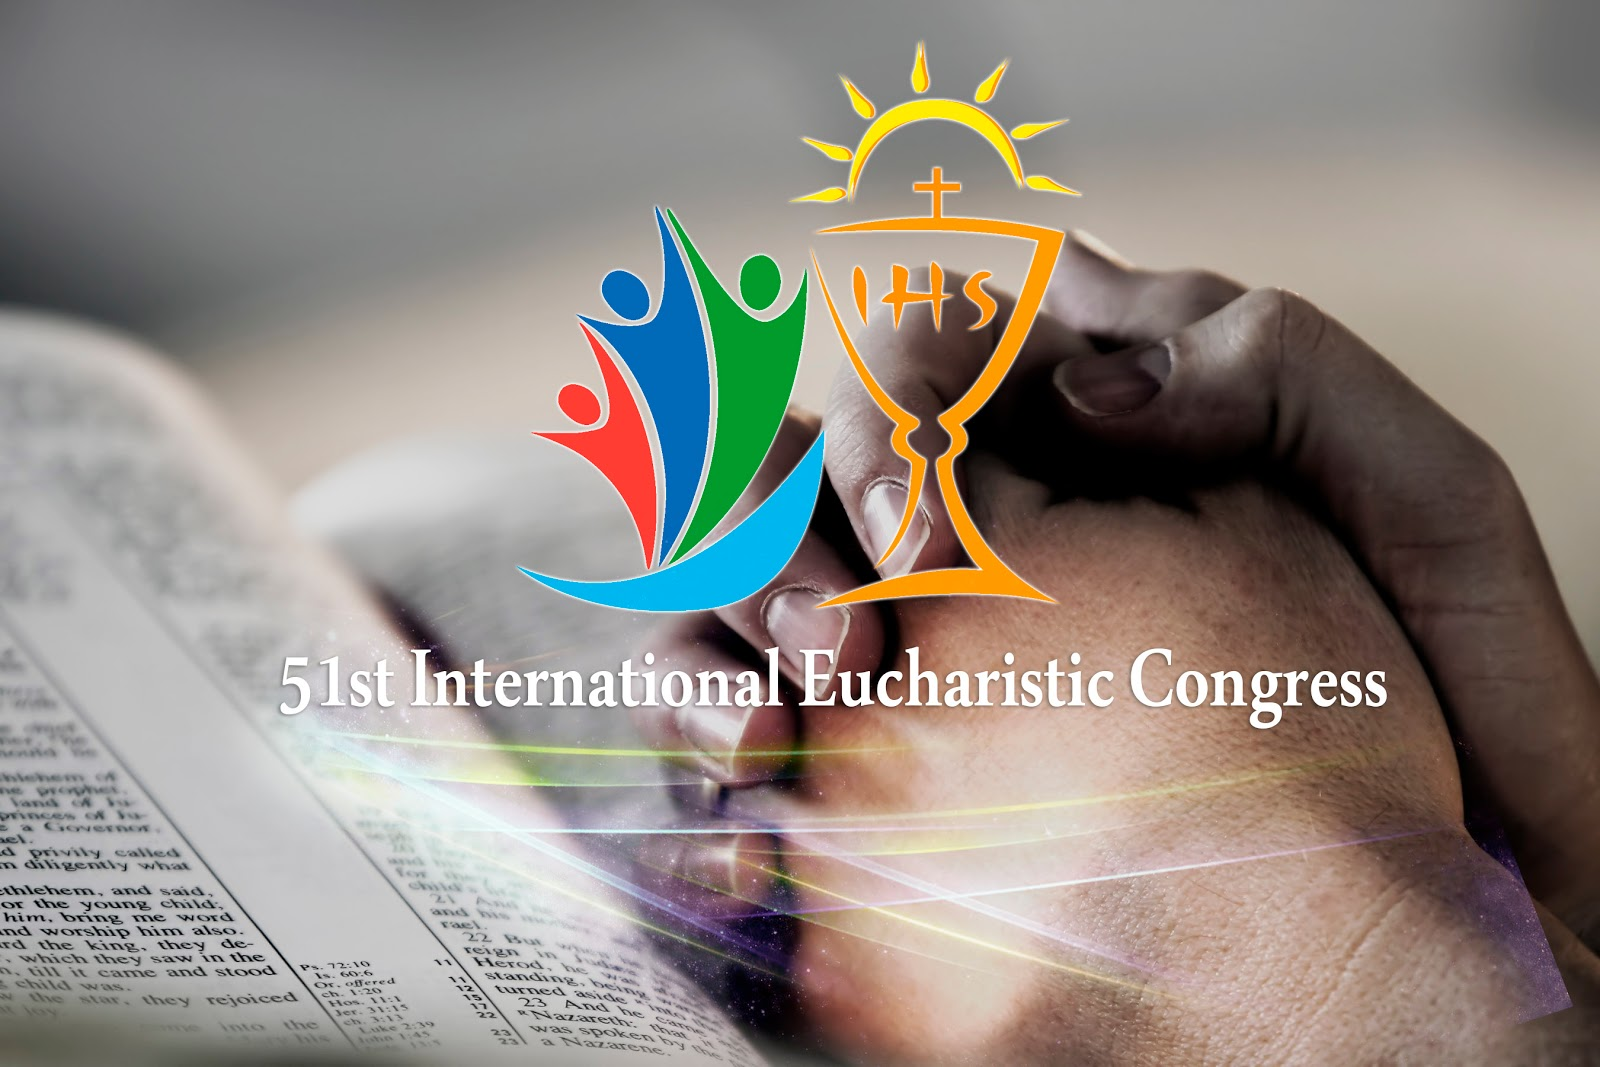 Praying hands with IEC logo